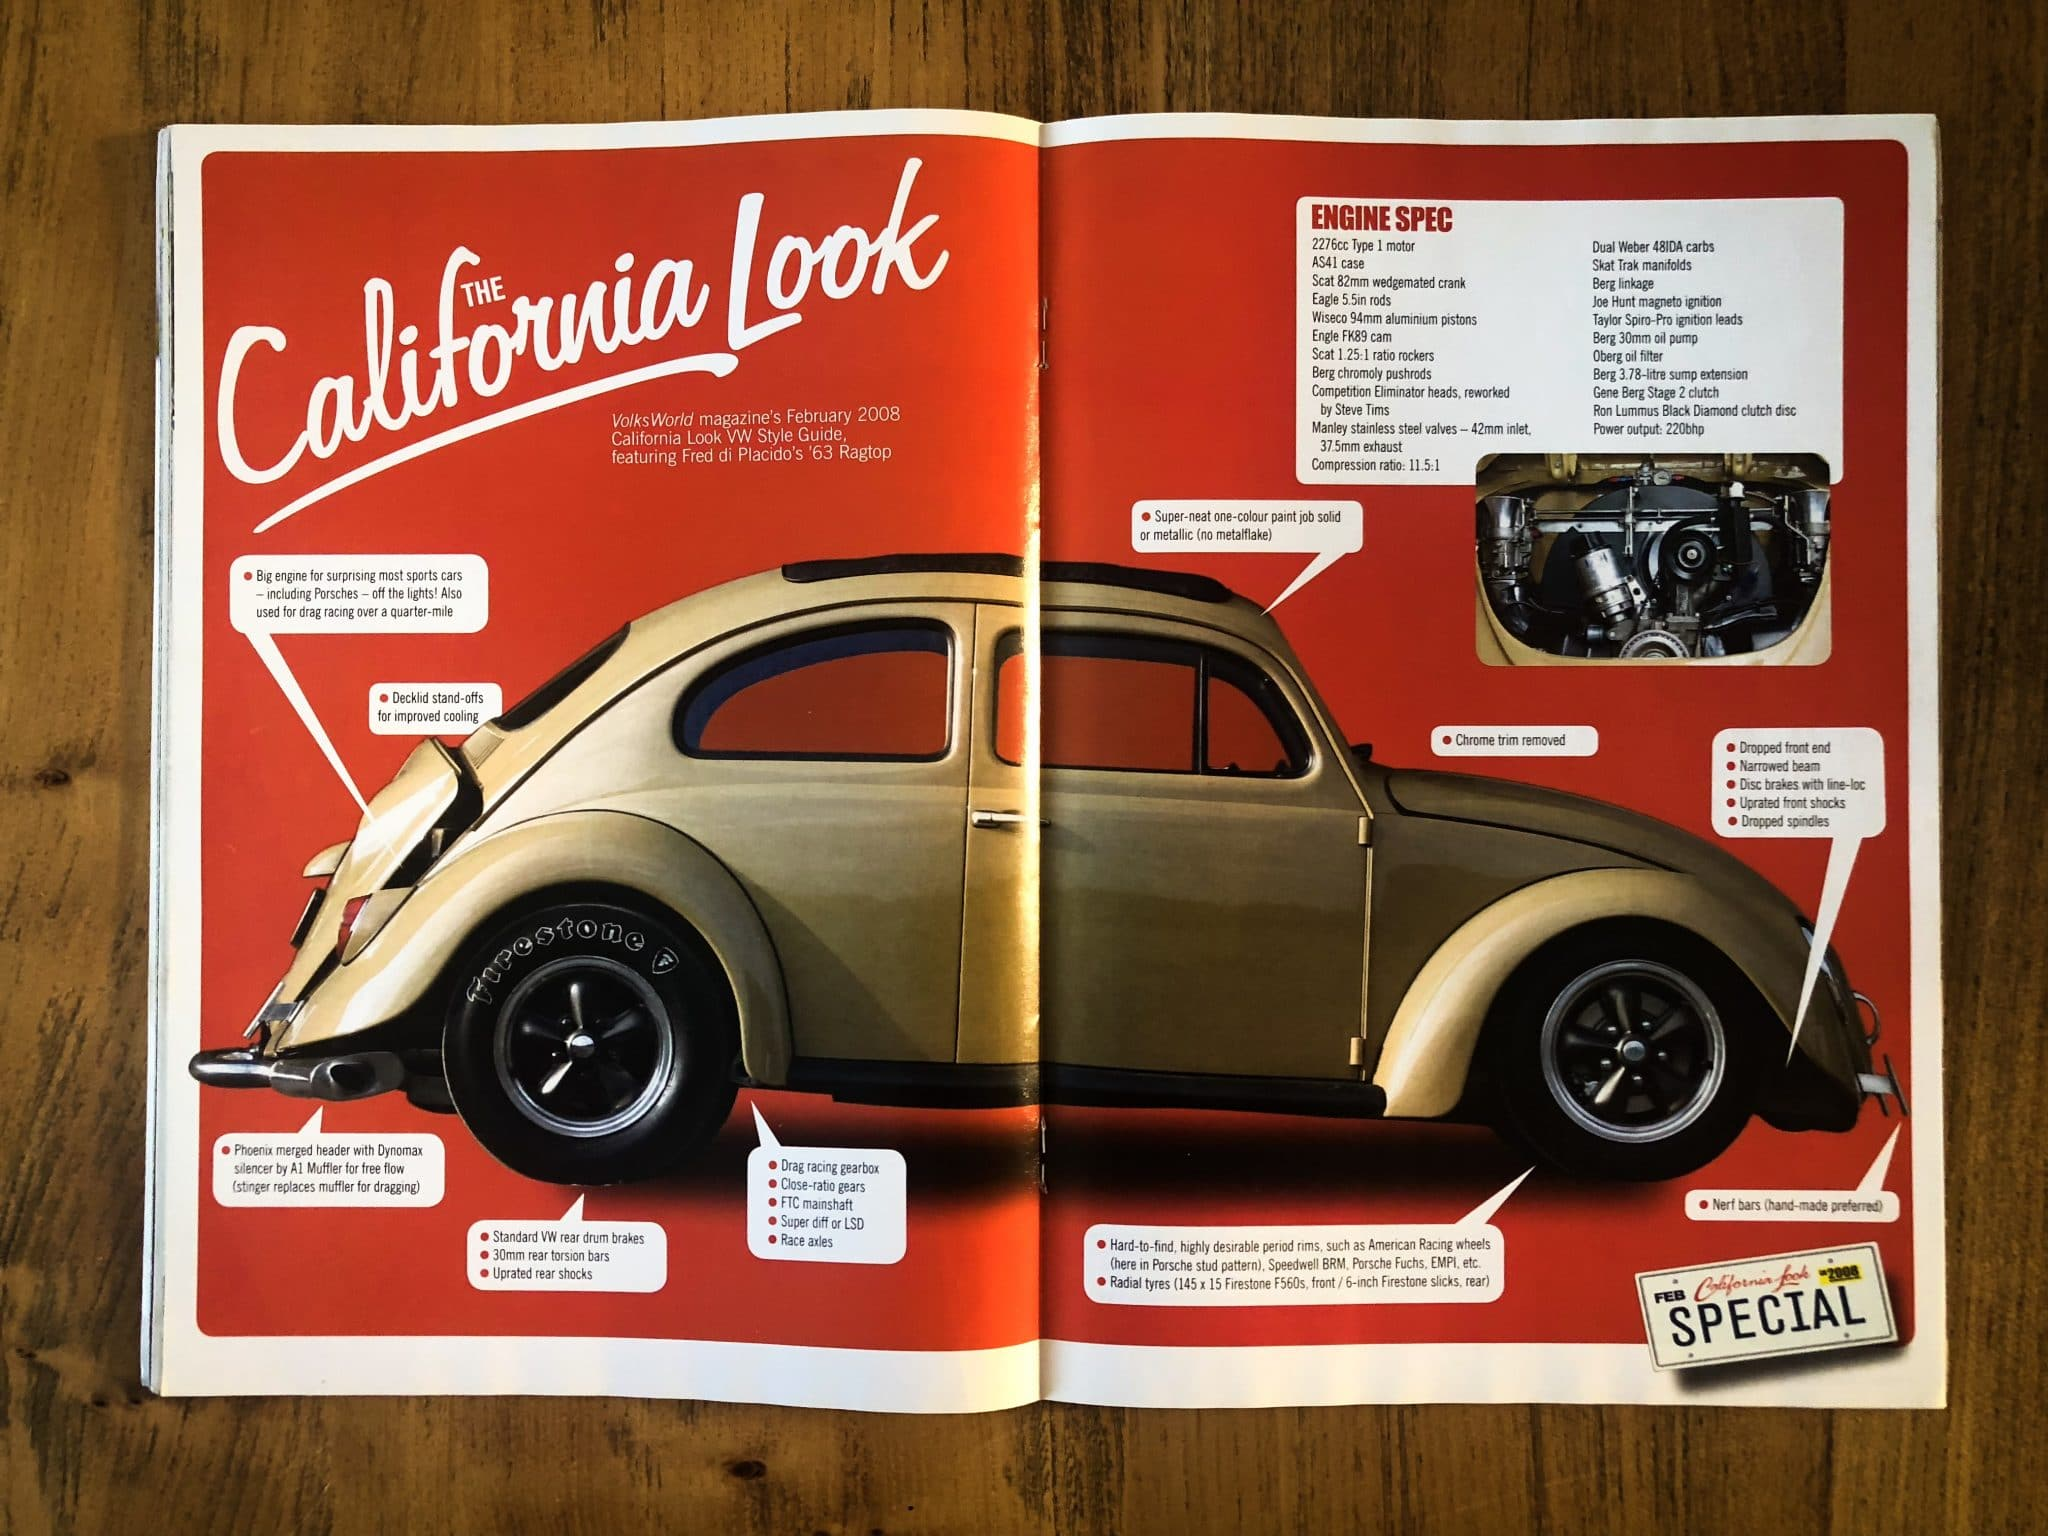 California Look Beetle - Andy Jewell